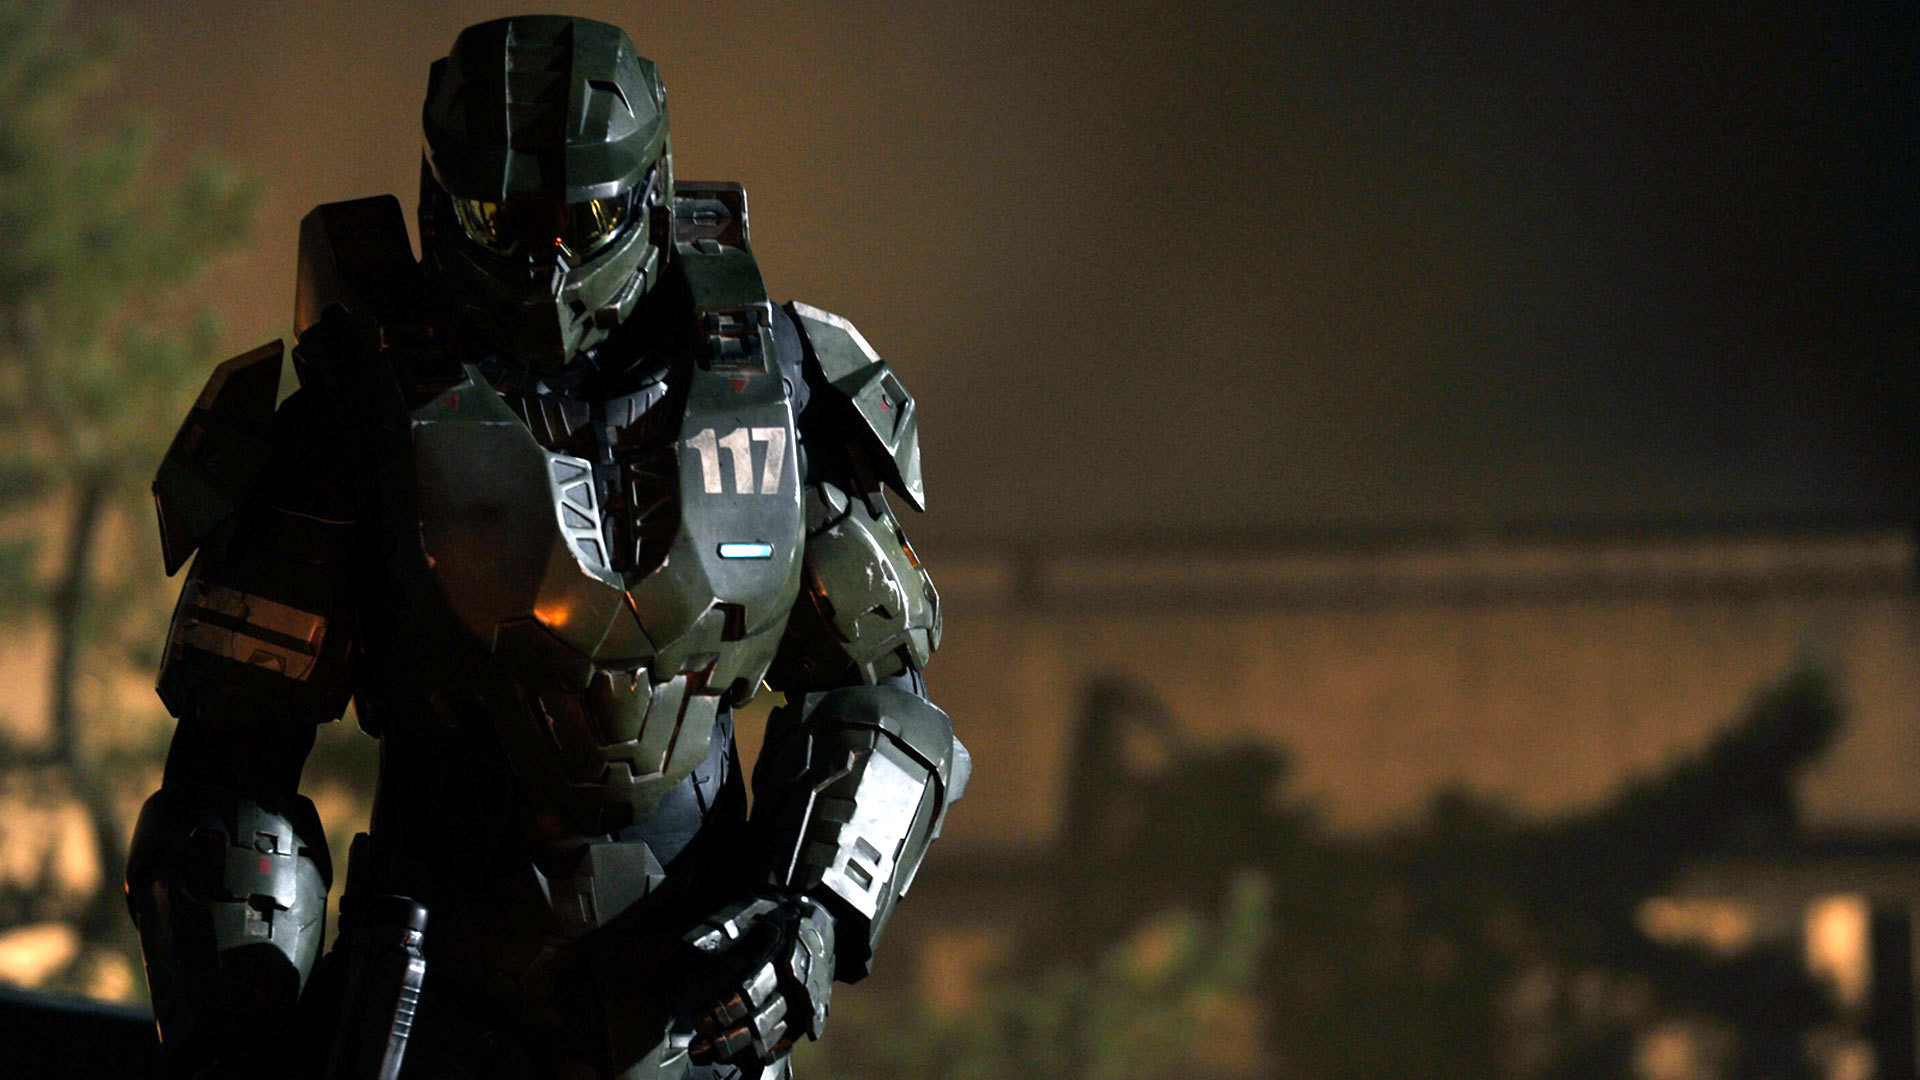 5 Halo 4: Forward Unto Dawn HD Wallpapers | Backgrounds – Wallpaper Abyss